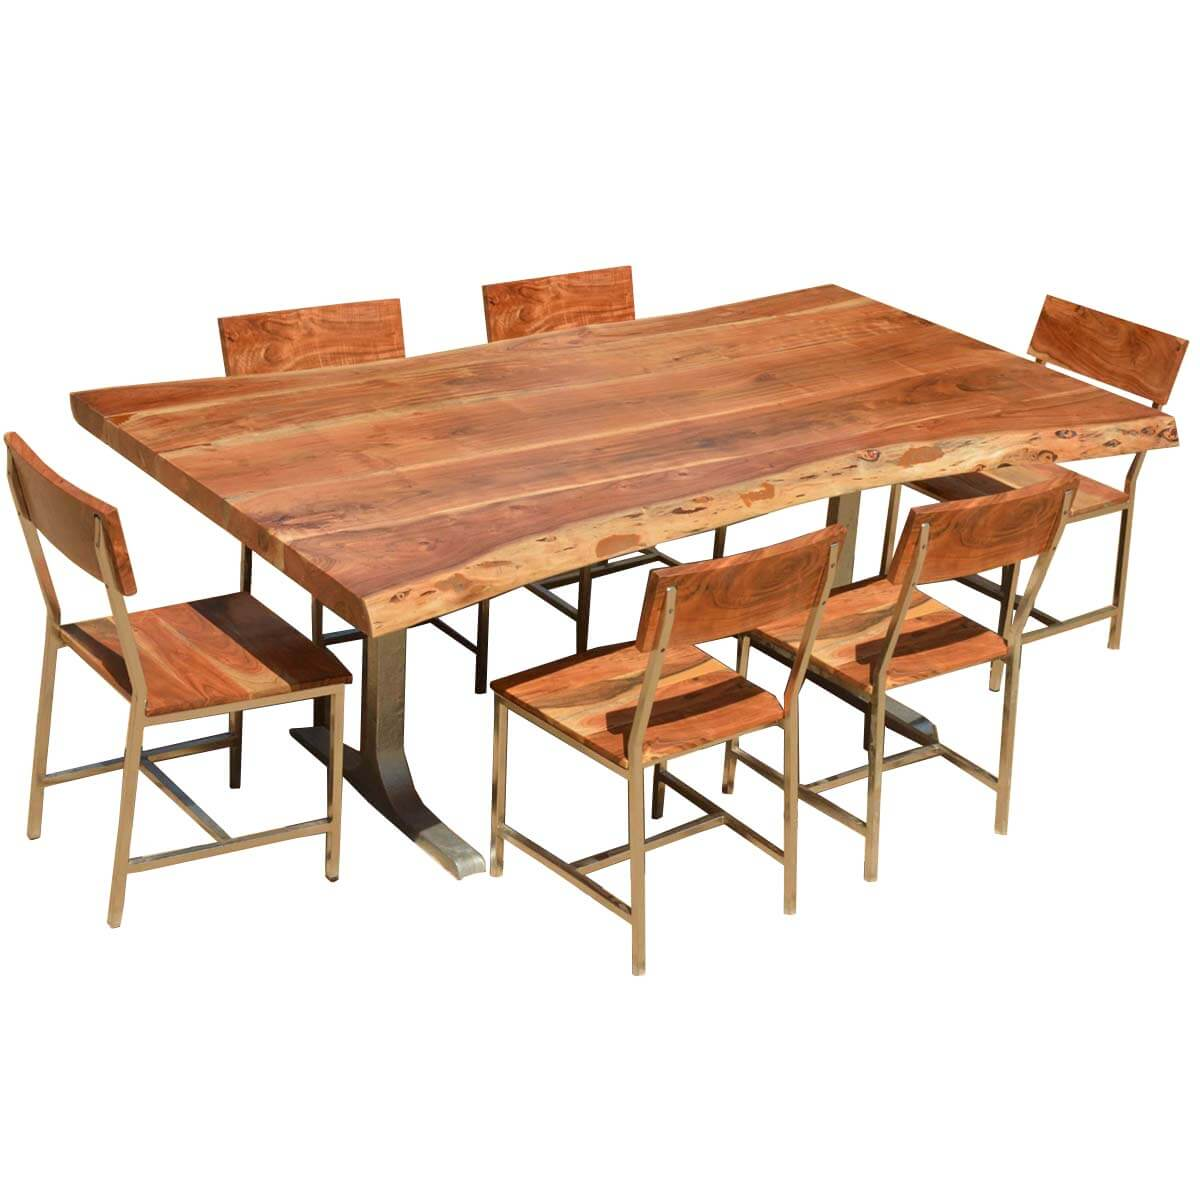 Sierra solid wood rustic live edge dining table chairs set for Wood dining table set